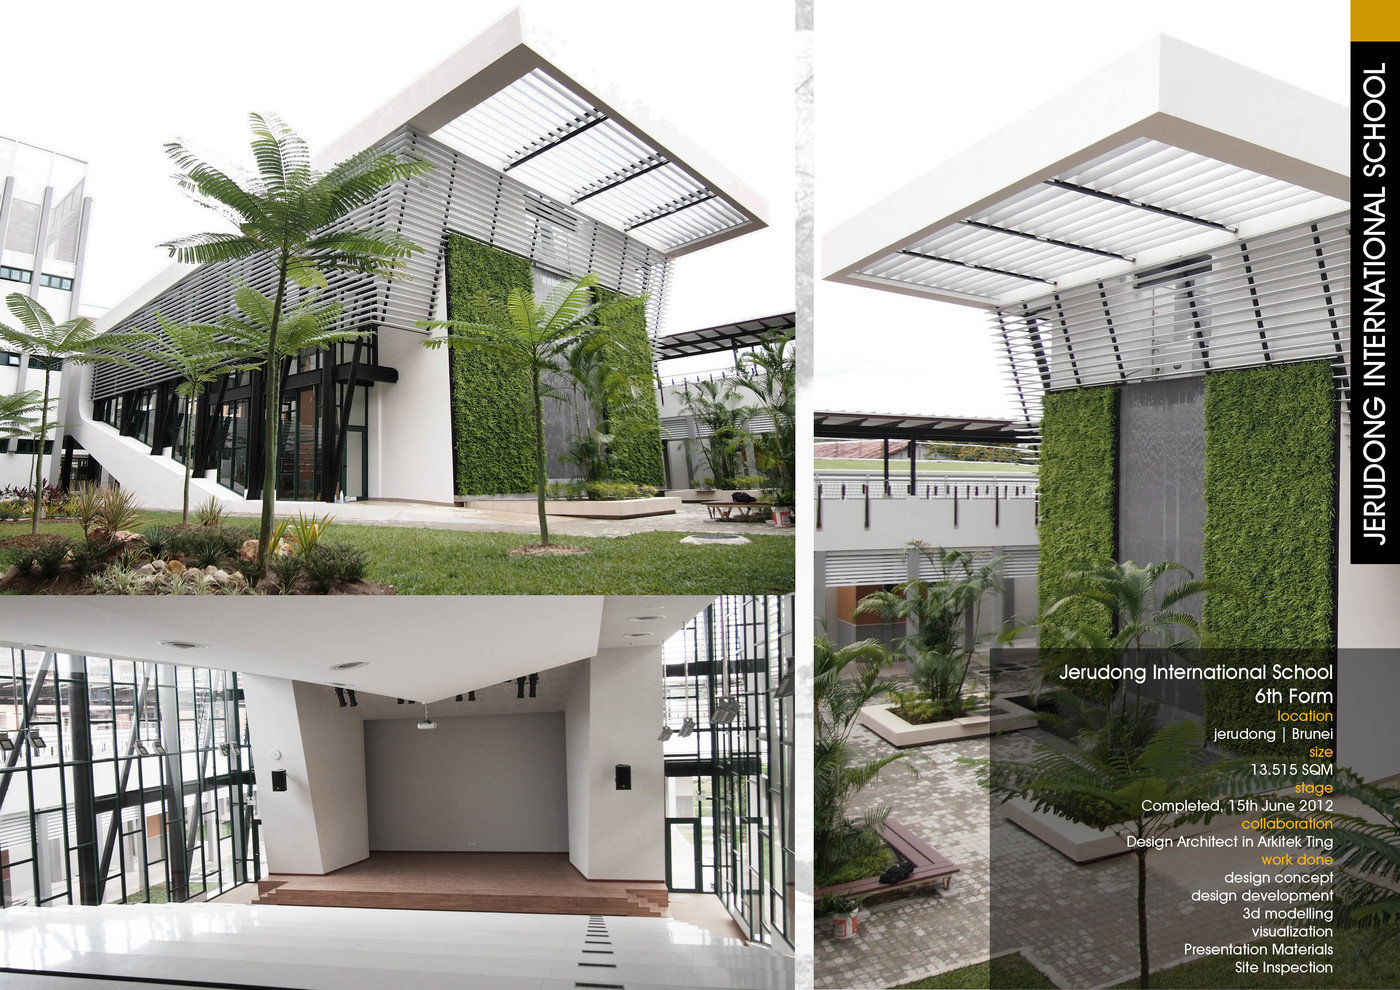 Superior The Jerudong International School (JIS) 6th FORM Is One Of The First Green  Building In Brunei Darussalam, The Design Takes Form Blending From The ...